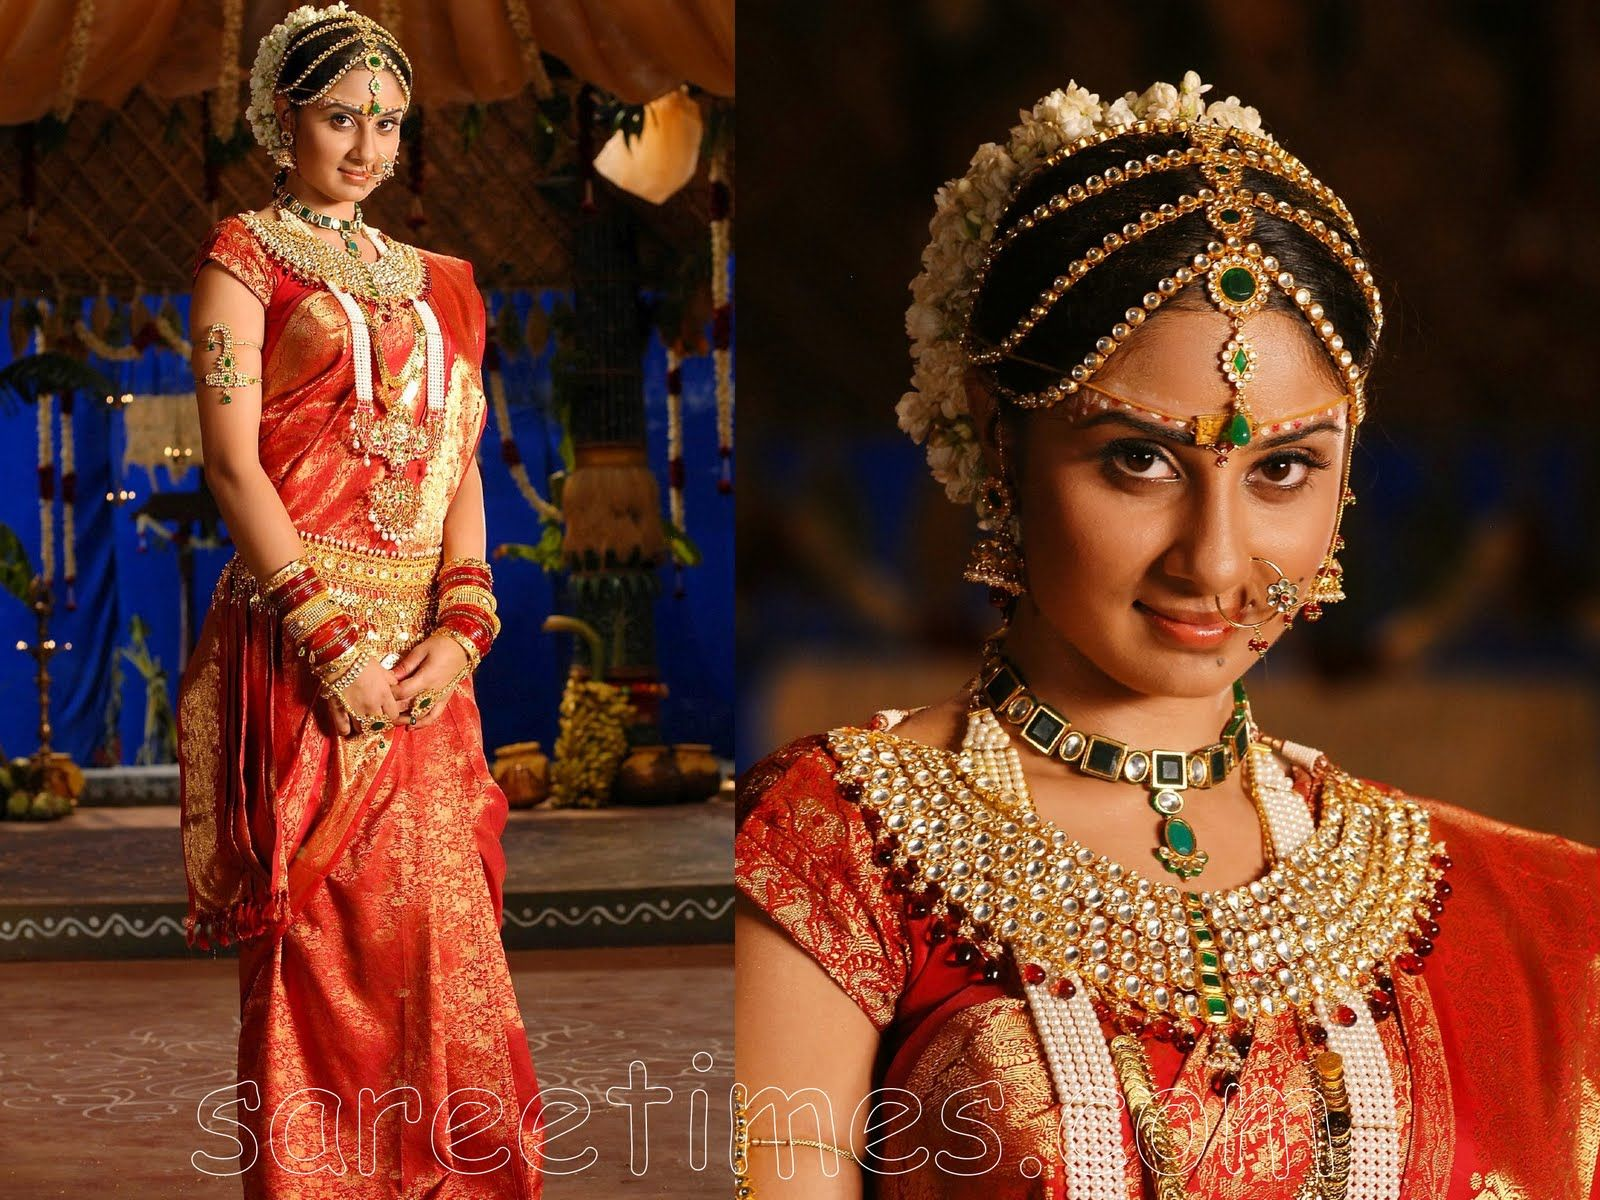 Marriage ornaments - South Indian Bridal Makeup Tips With Images A South Indian Bride Can Be Identified With Her Elaborate Ornaments Weddings In The Southern Part Of India Are